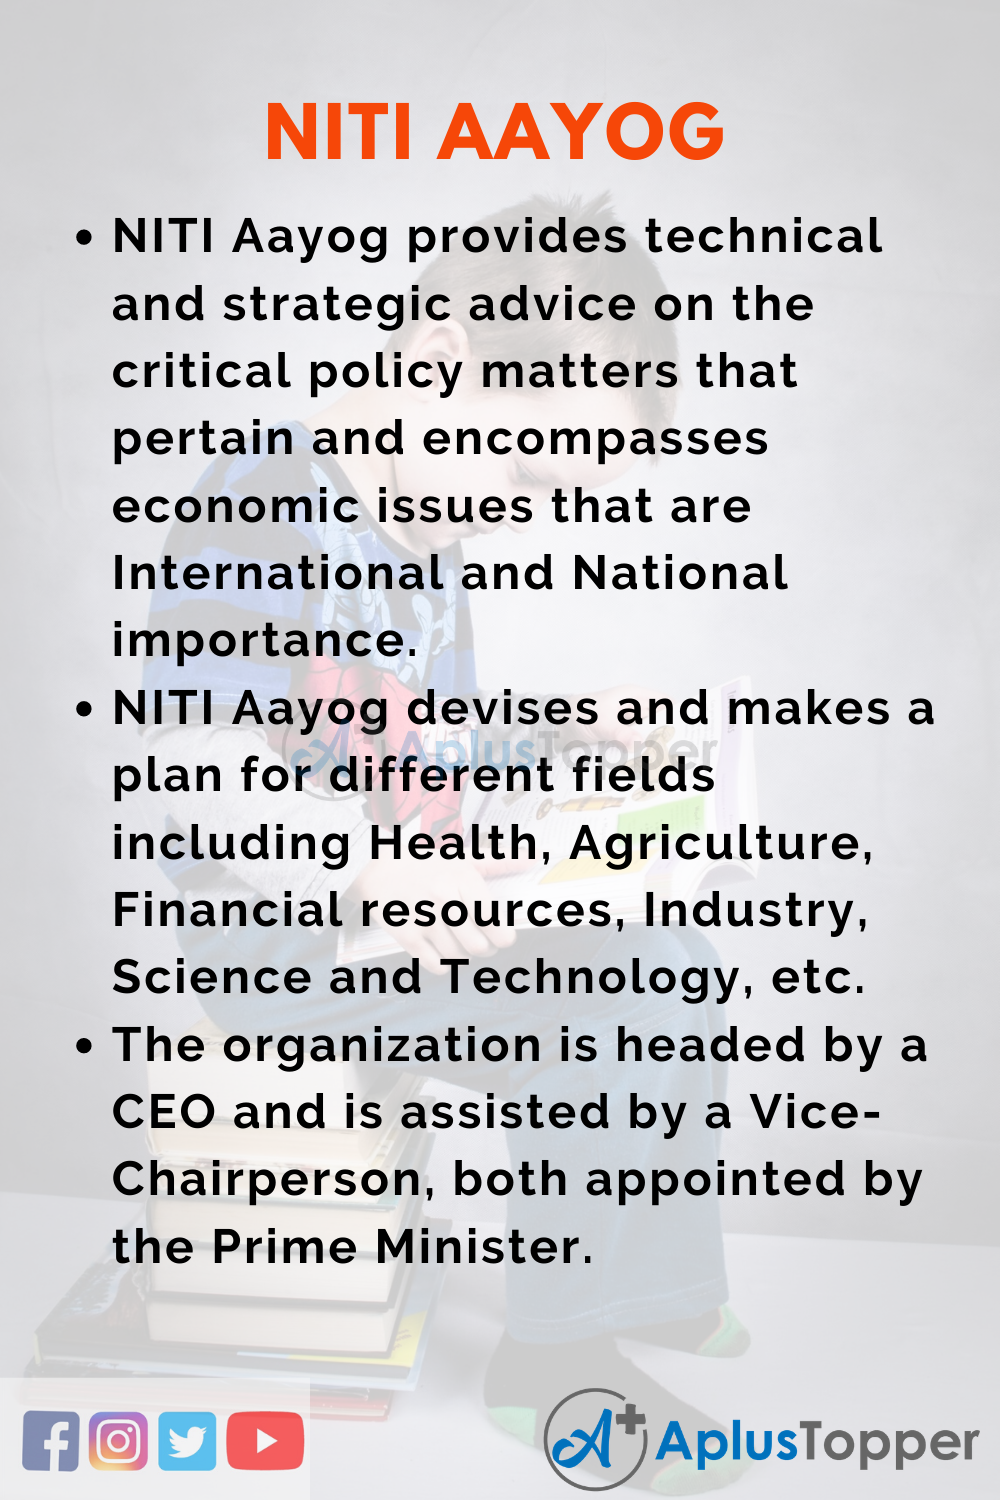 10 Lines on Niti Aayog for Higher Class Students